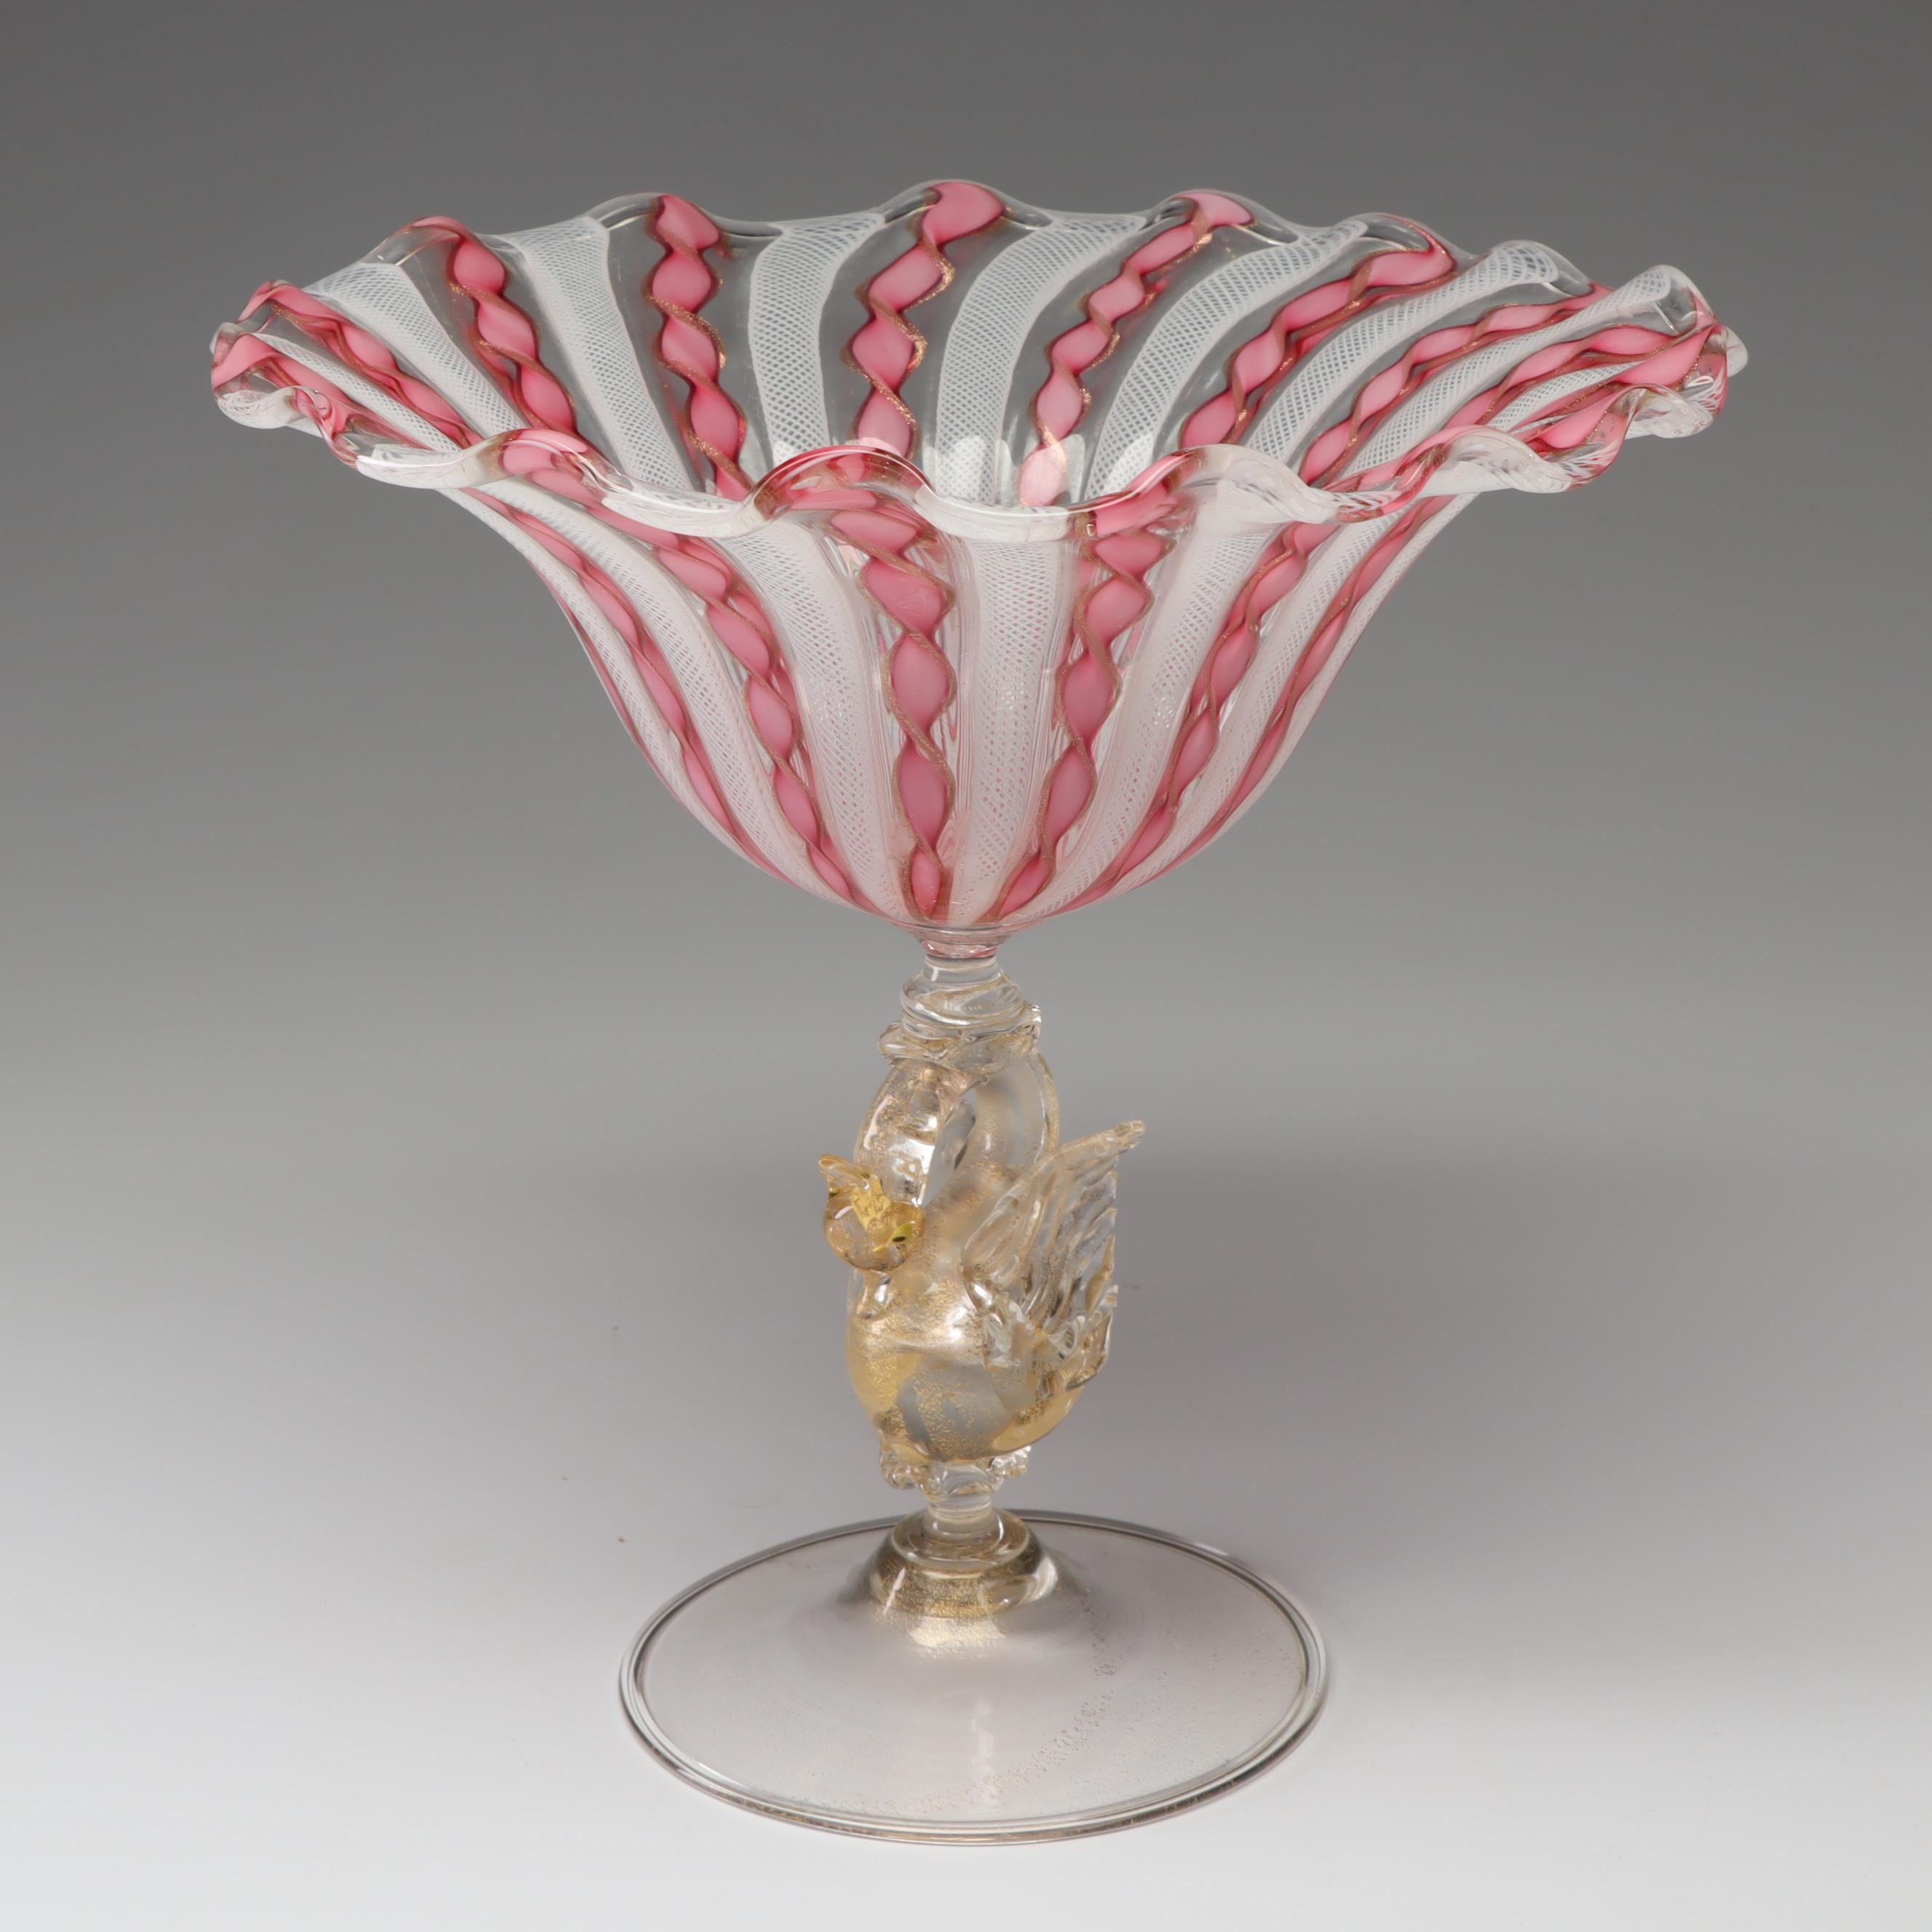 Salviati Murano Style Blown Glass Compote, Early to Mid 20th Century